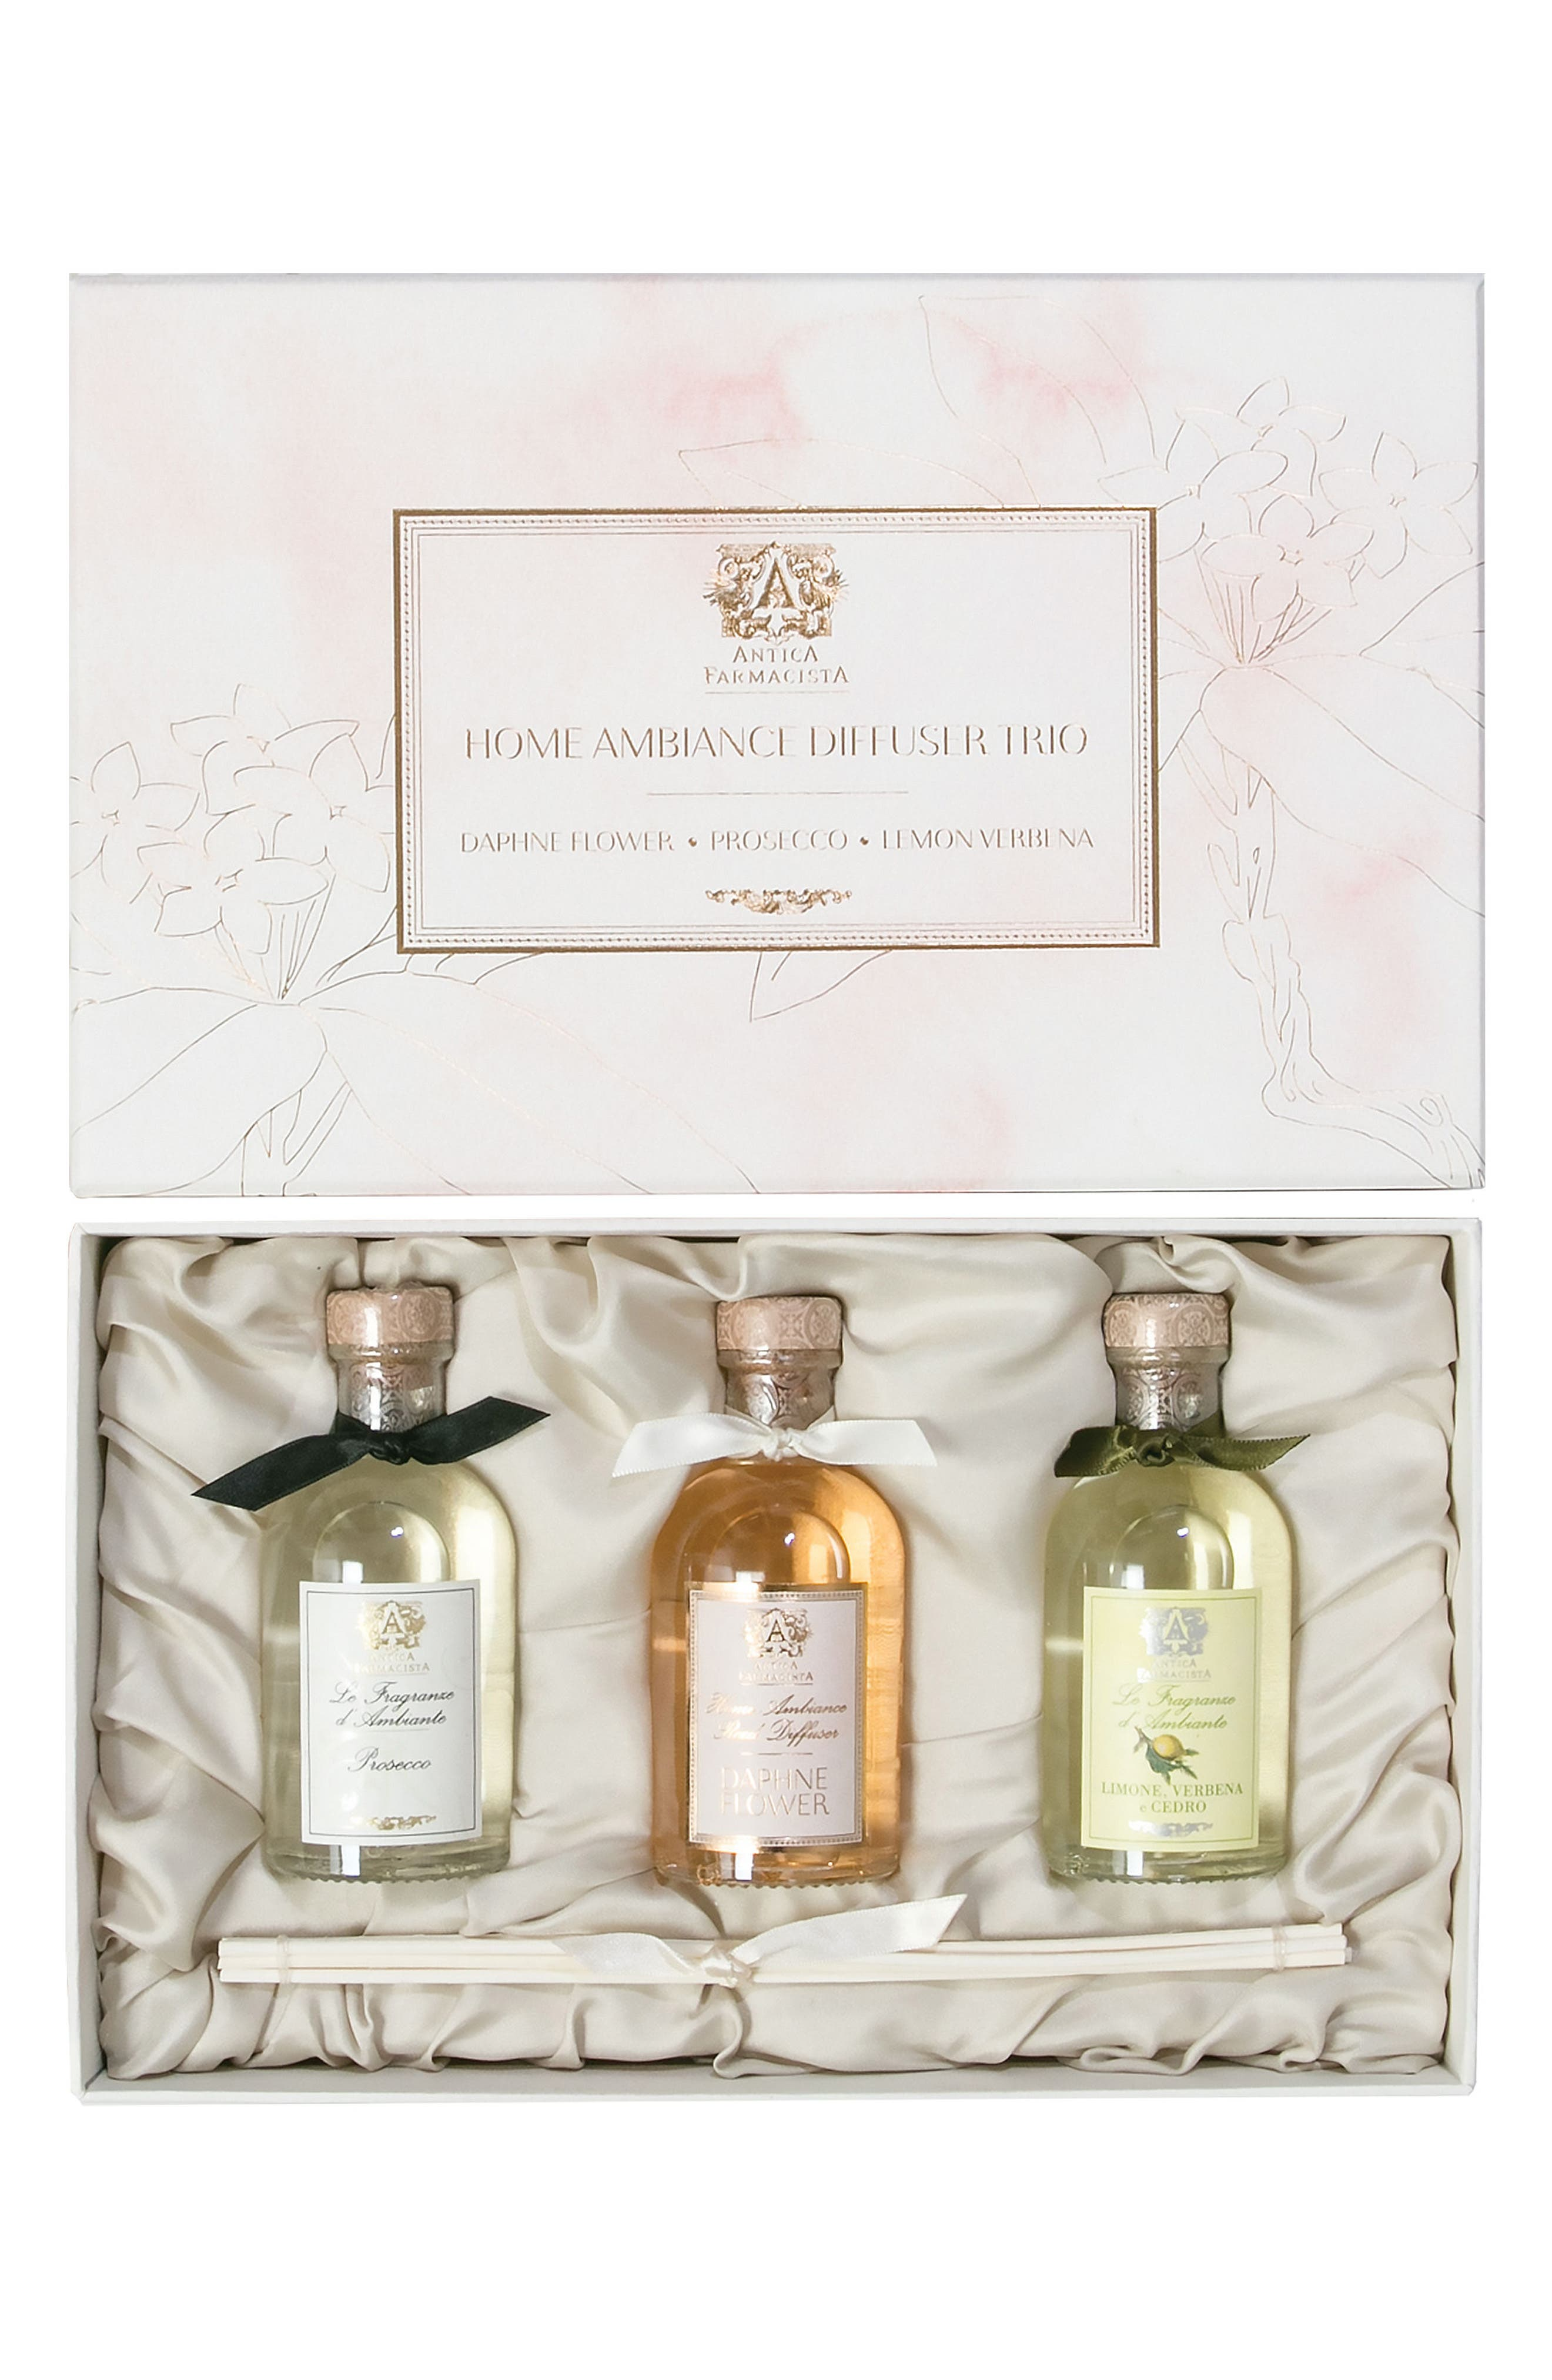 Antica Farmacista Home Ambiance Diffuser Trio ($78 Value)